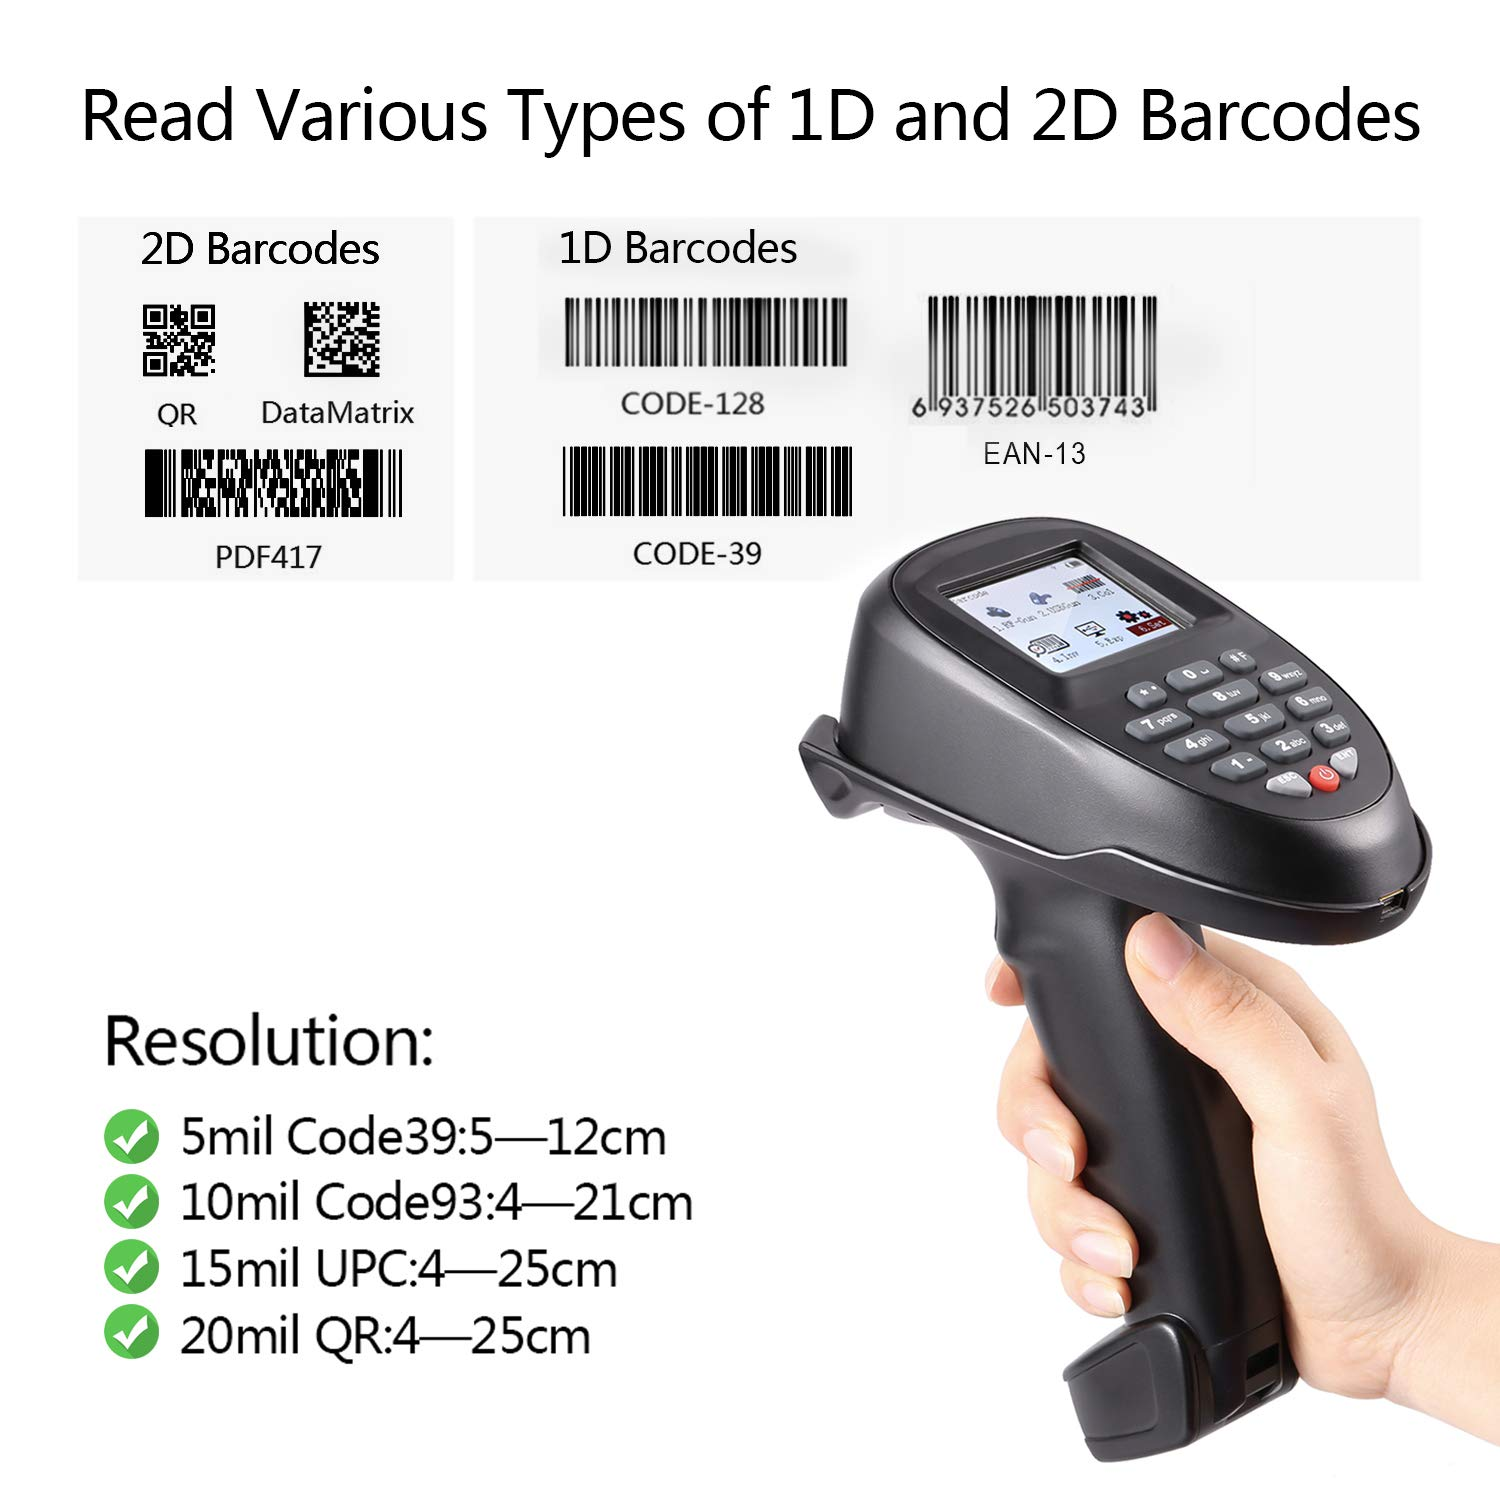 TroheStar Barcode Scanner 1D/2D/QR/PDF417 Wireless and Collector Portable Data Terminal Inventory Device Bar Code Reader PDT with TFT Color LCD Screen & USB Cradle Receiver Charging Base by trohestar (Image #4)